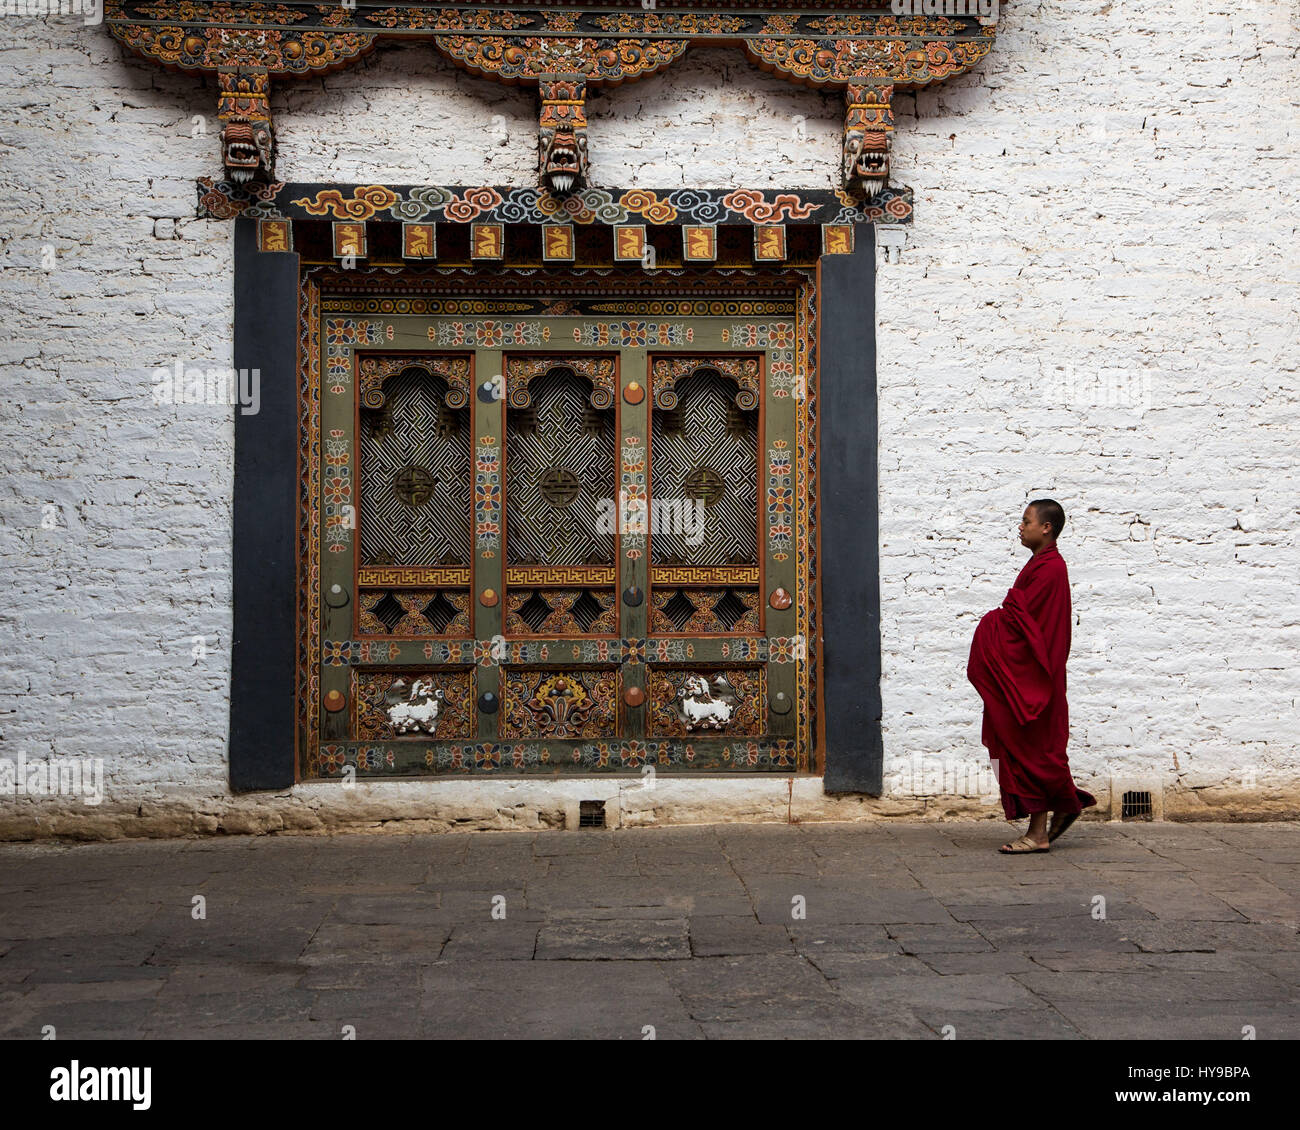 A Buddhist monk in the courtyard of the Punakha Dzong, Punakha, Bhutan. - Stock Image